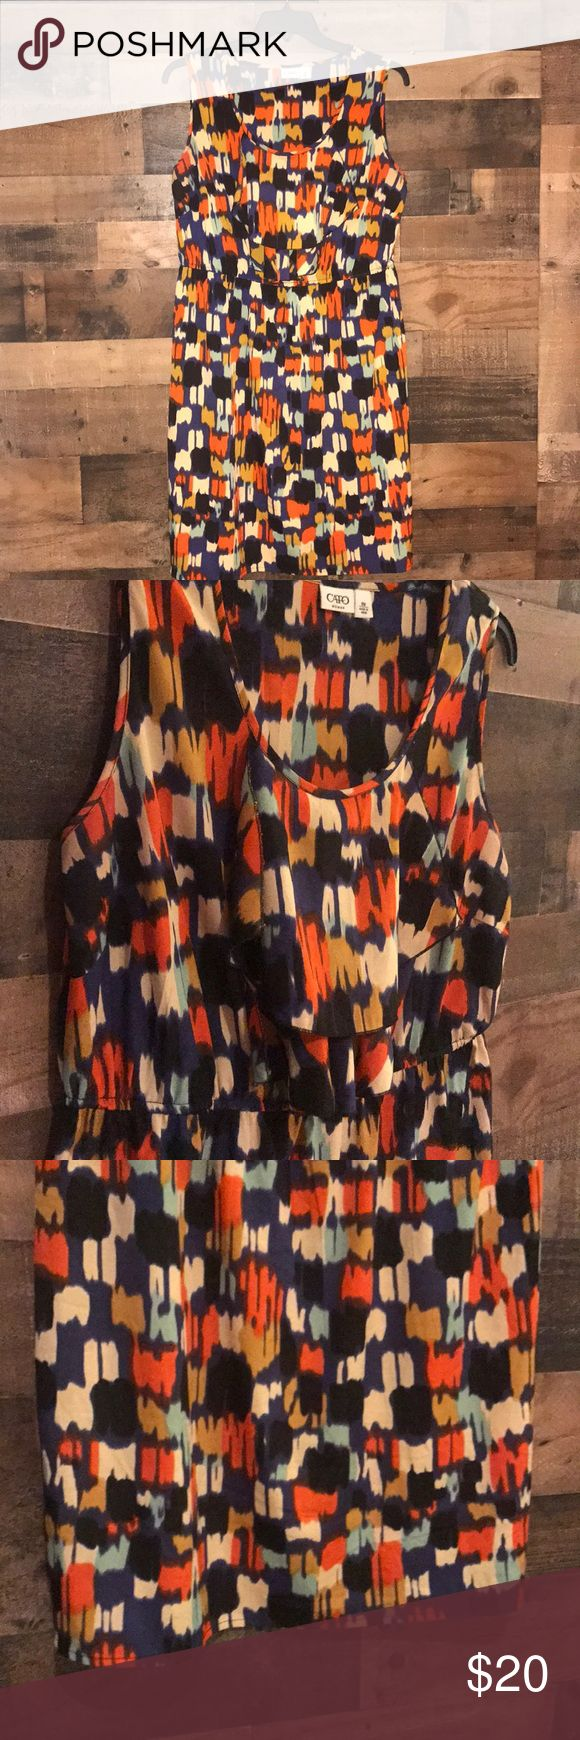 "Women's sleeveless dress Cato plus size dress 18W NAVY, CREAM, TAN, and ORANGE   41"" length Cato Dresses"